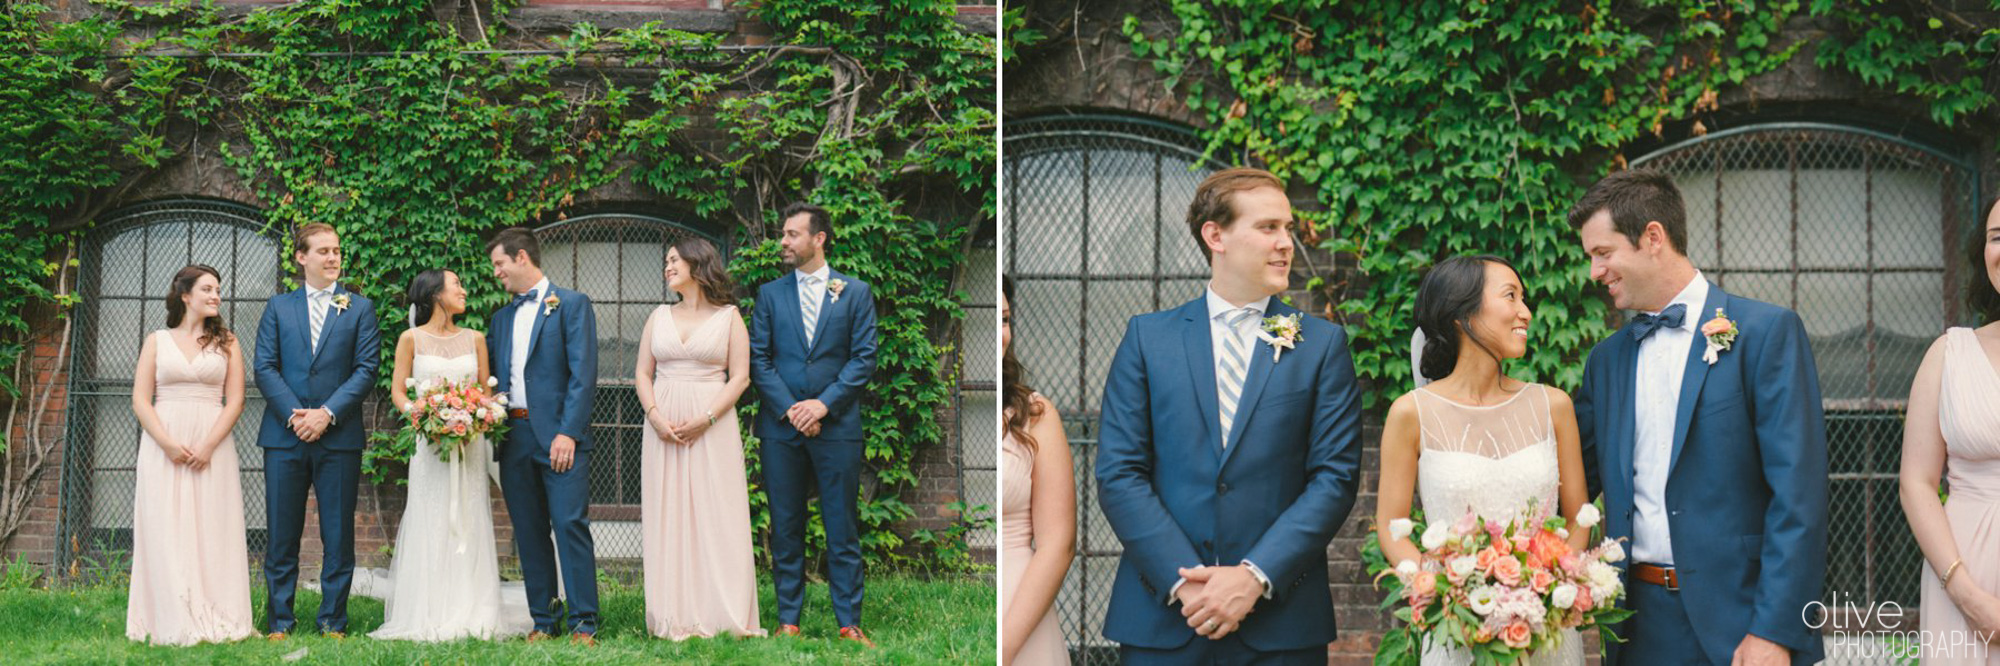 Caffino Restaurant wedding Toronto Archives | Olive Photography